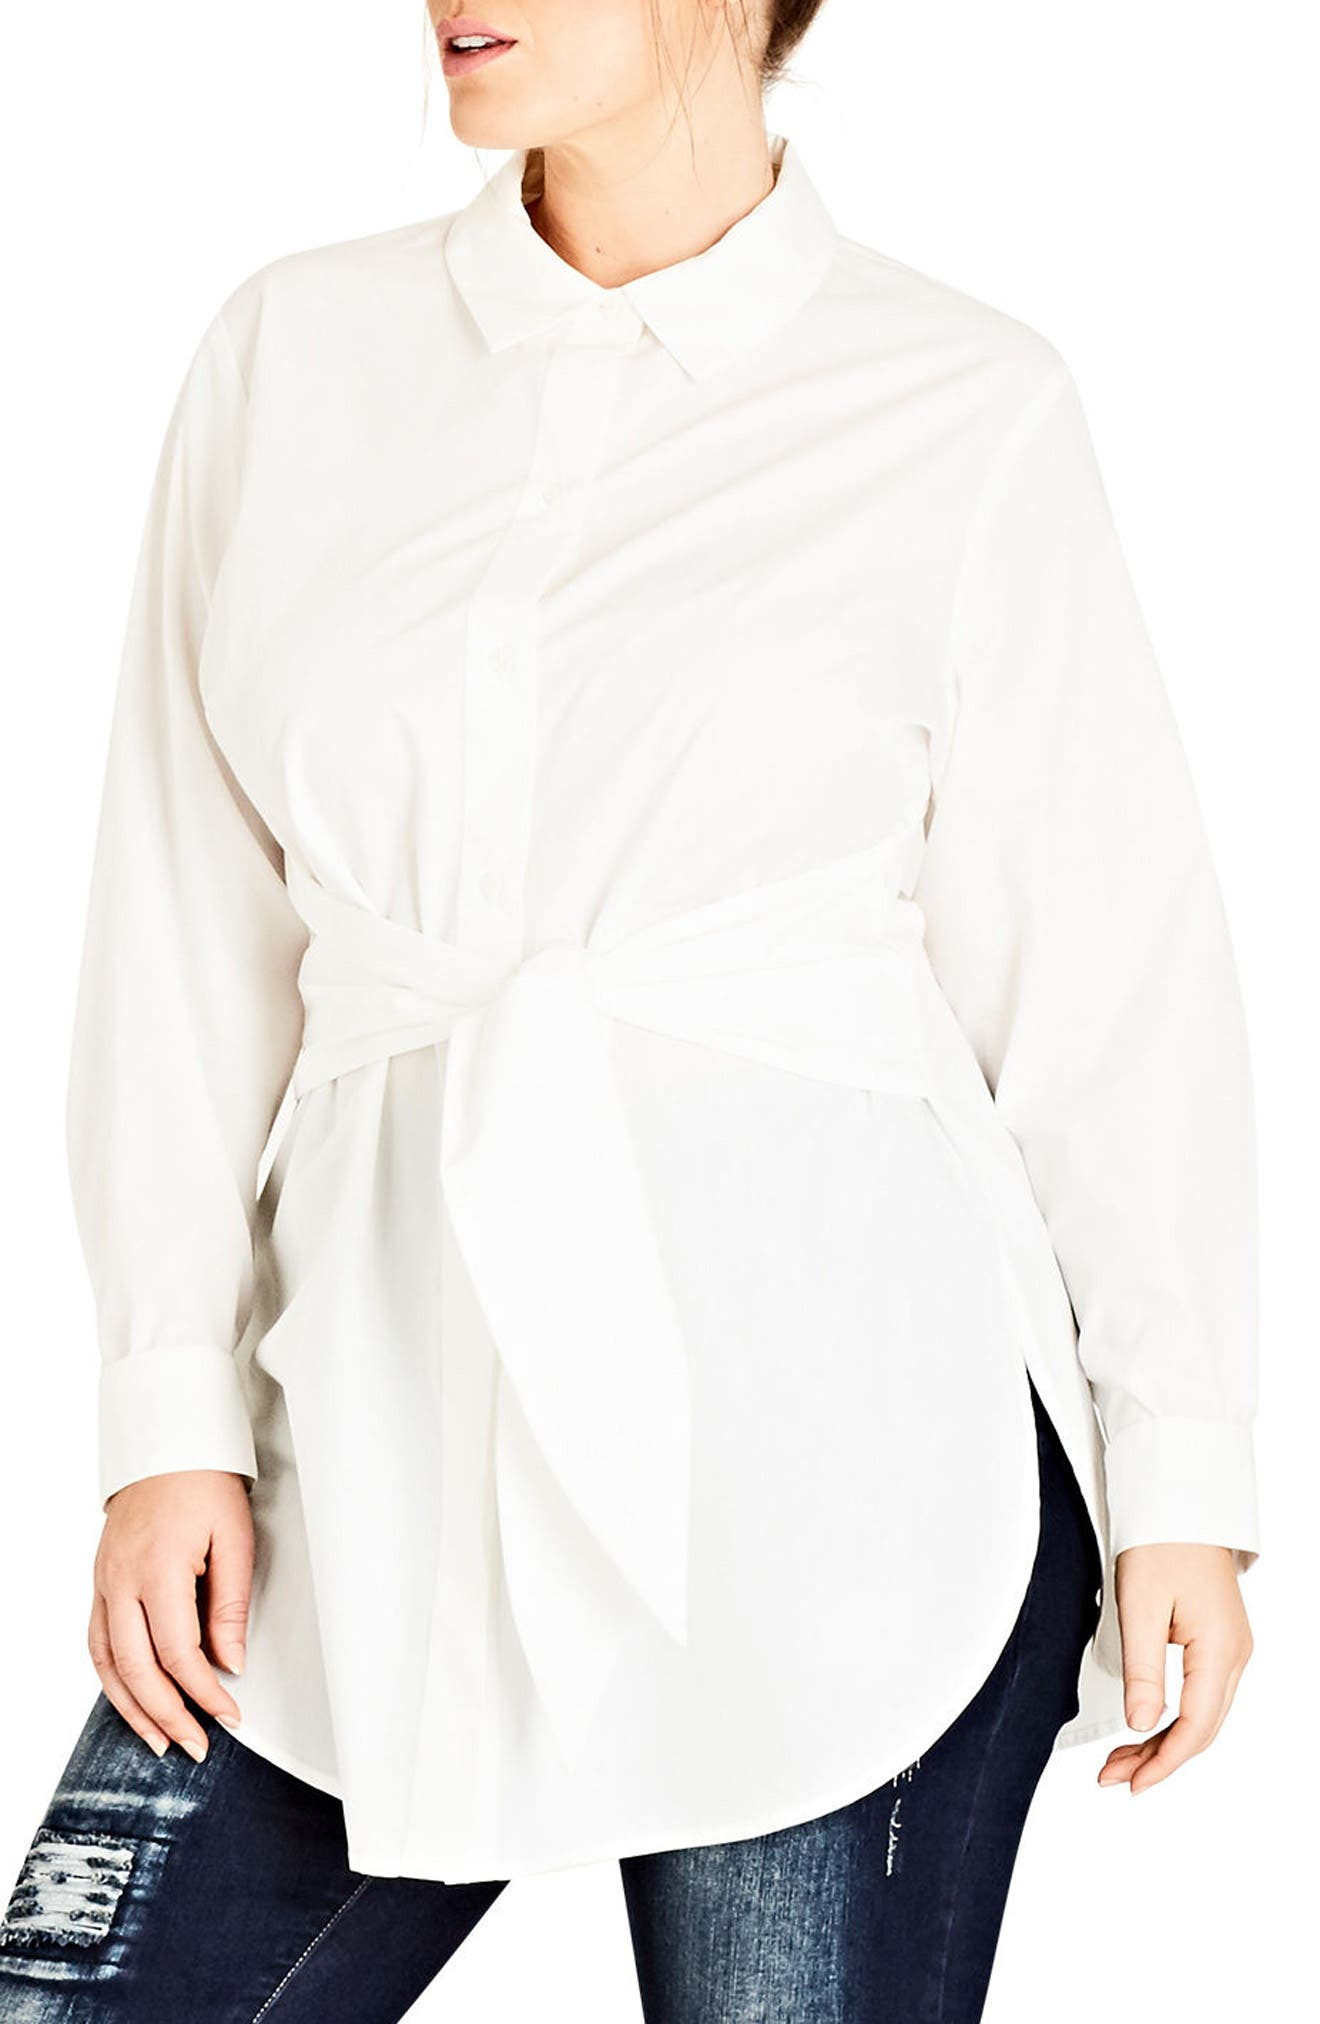 Alternate Image 1 Selected - City Chic Tie Waist Tunic (Plus Size)